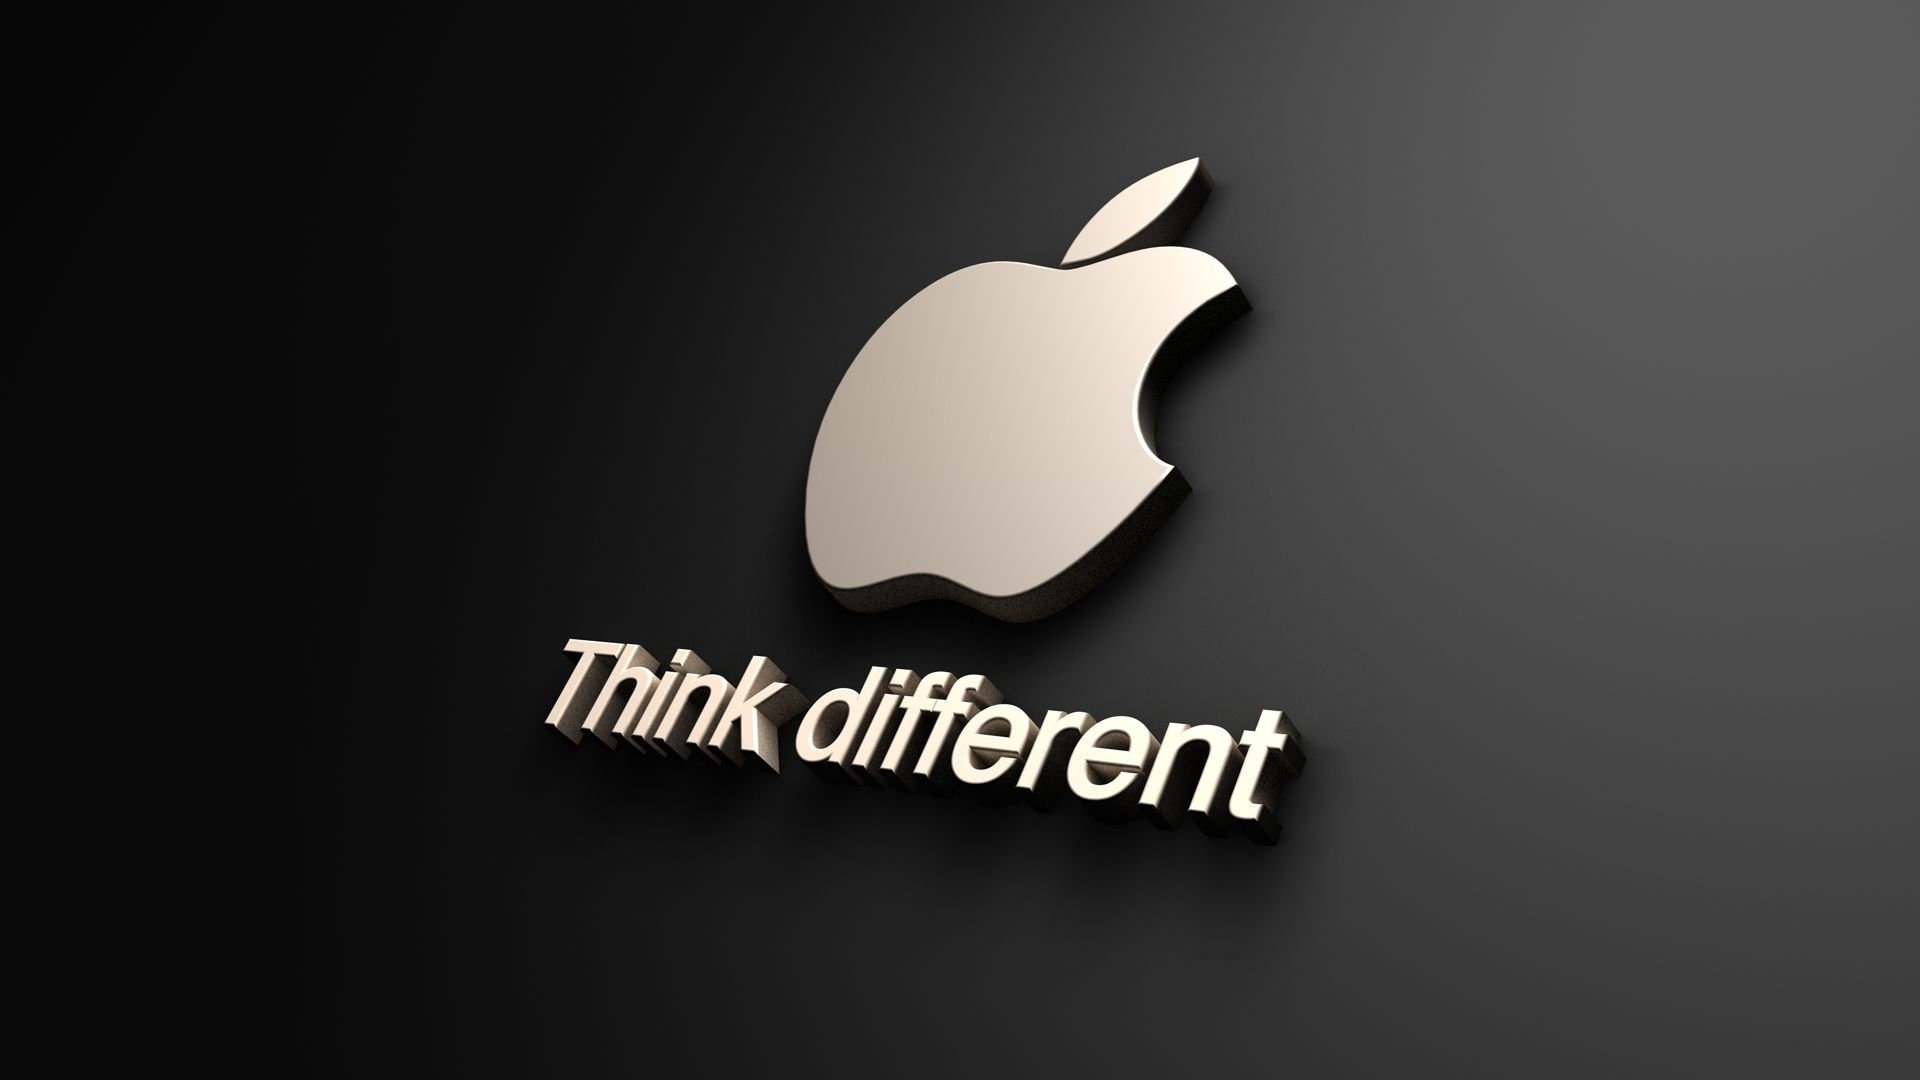 think different apple logo 1080p #1080p, #apple, #computers, #logo